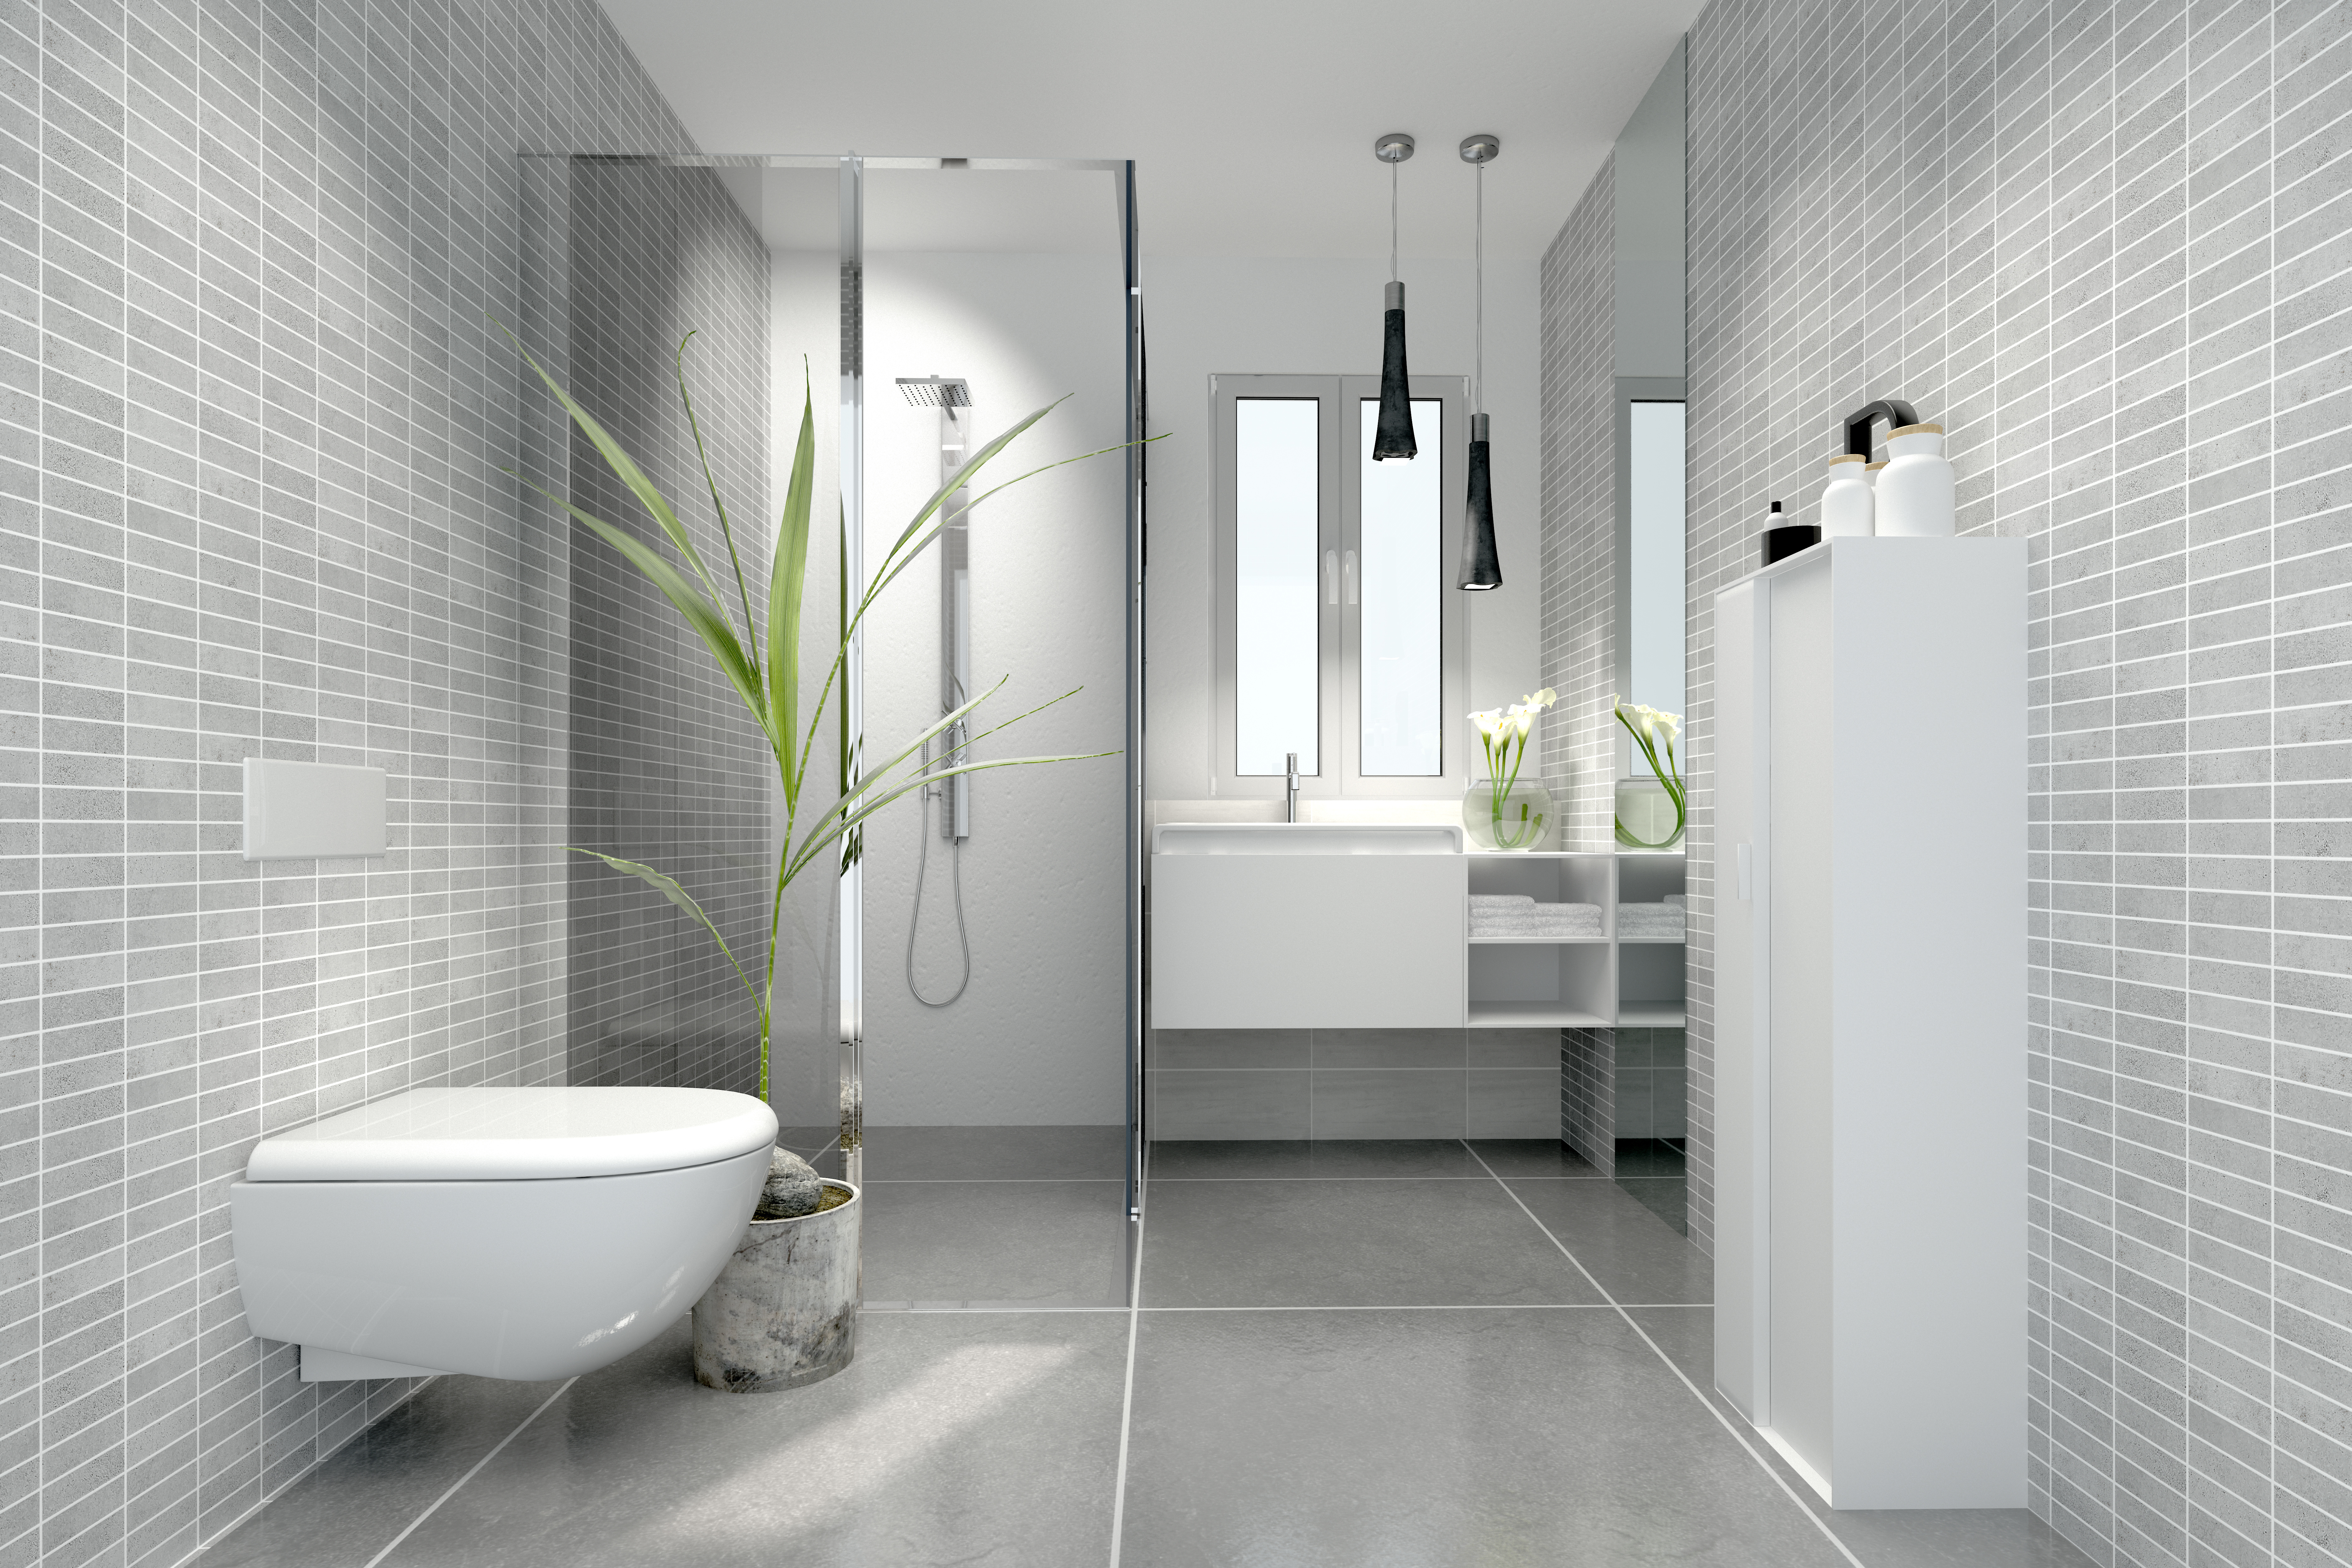 Wall-mounted toilets can create an elegant bathroom design, but there are a few things to consider first.